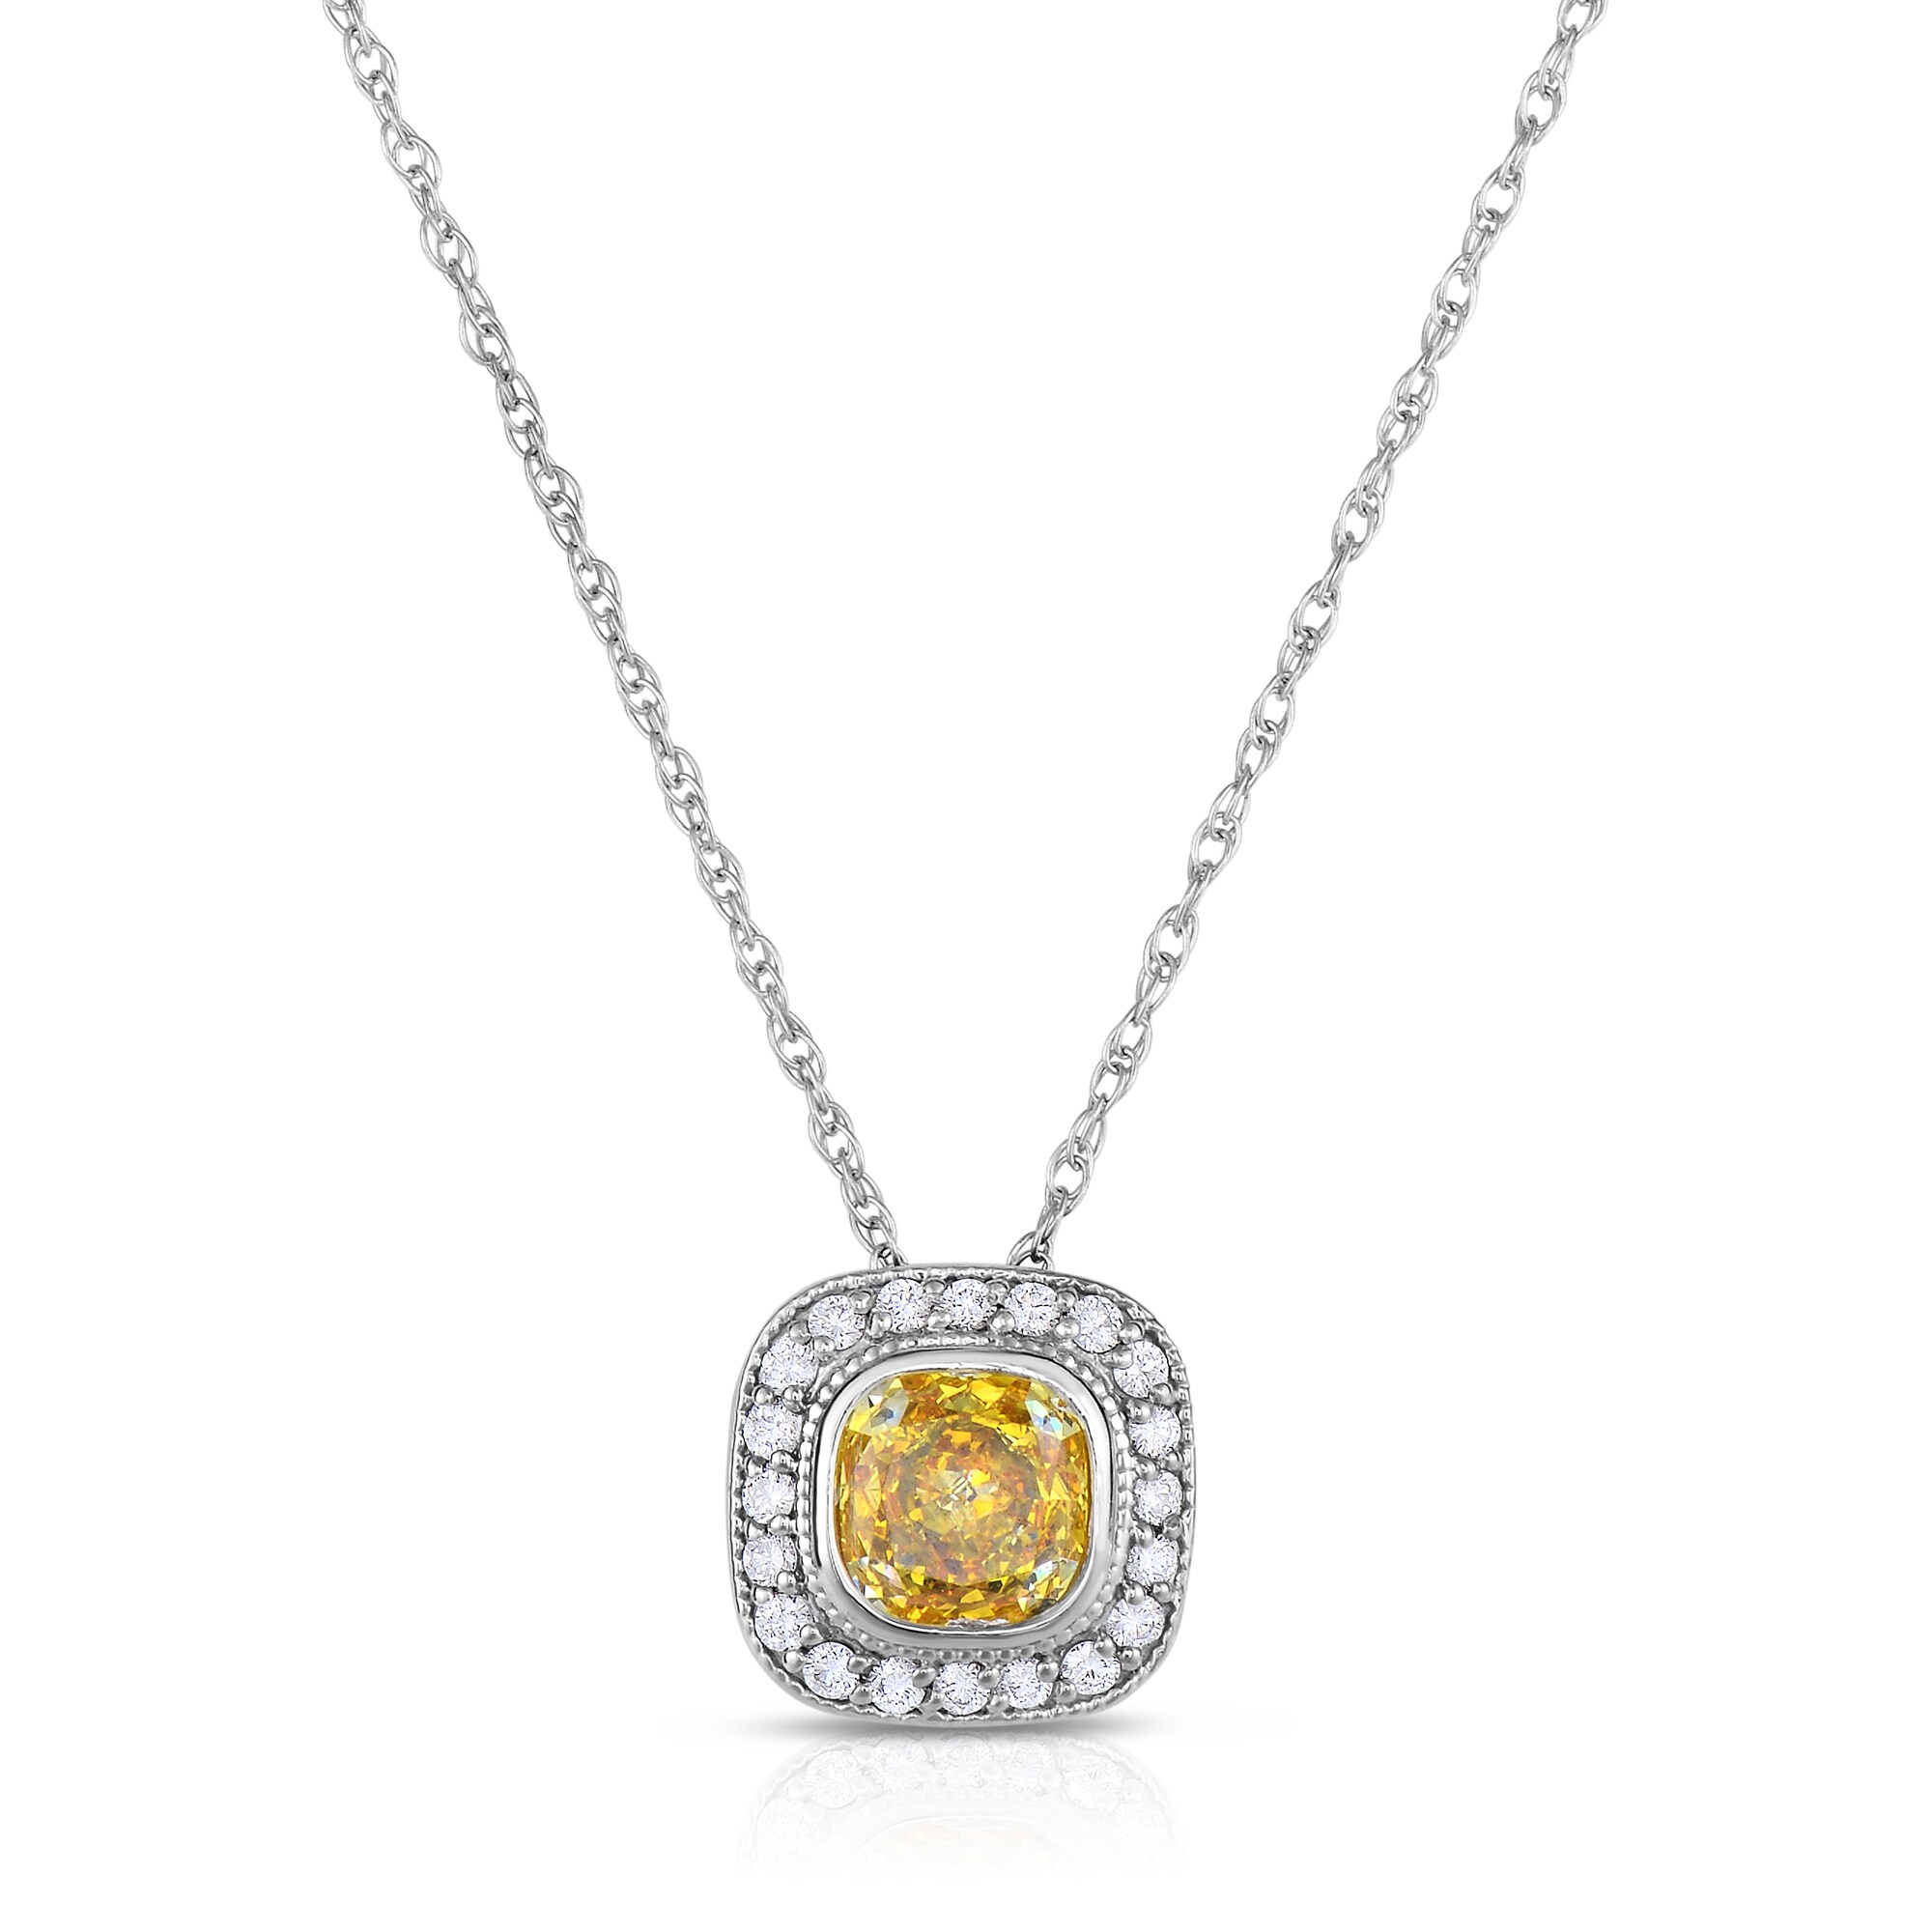 watches set product aeee solitaire h gold i pendant free tdw necklace shipping diamond jewelry overstock bezel today